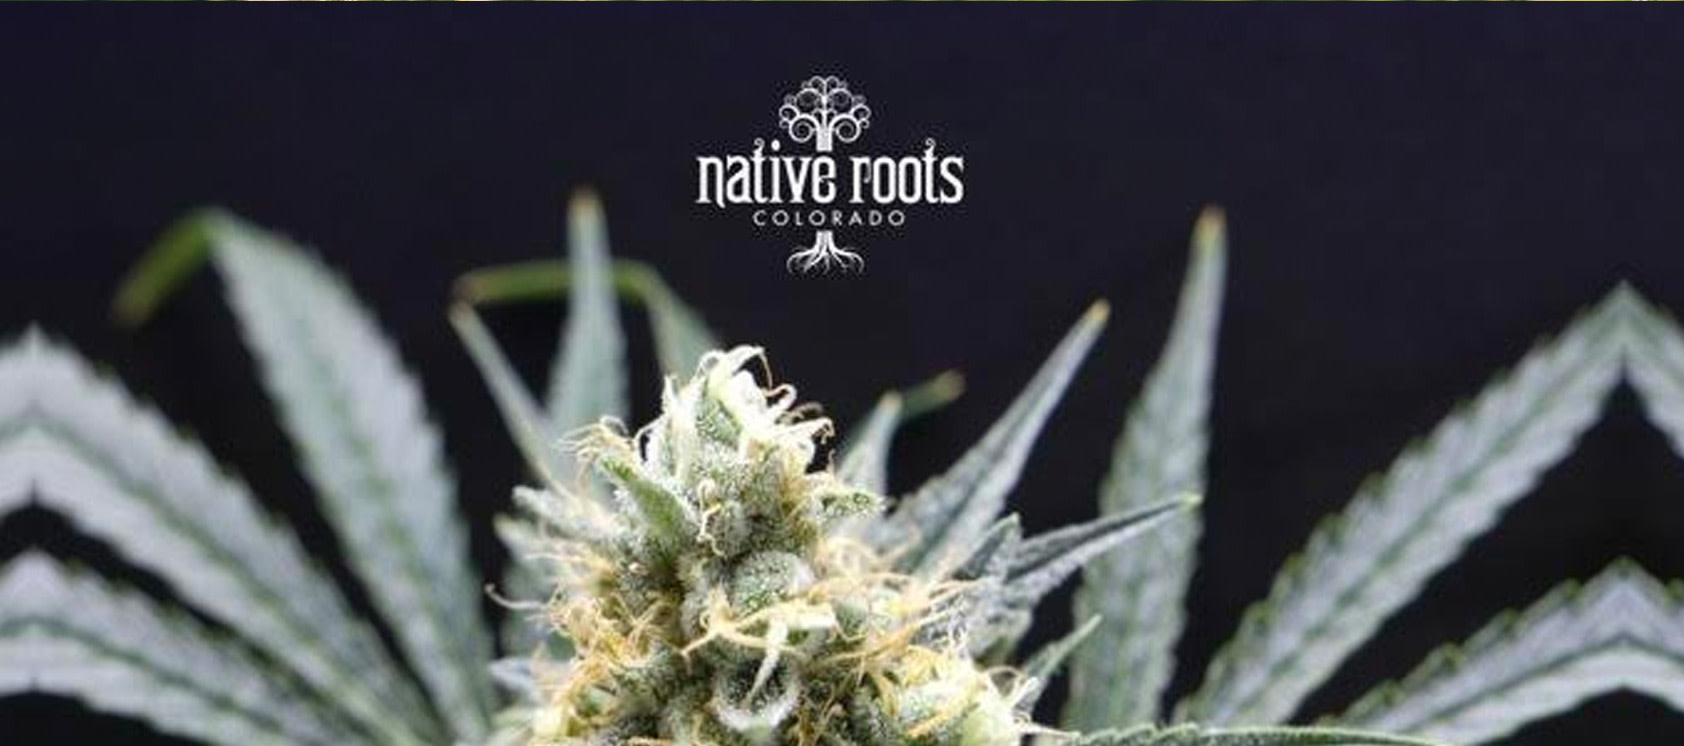 Pot Leaf with the Native Roots Cannabis Company Old Logo